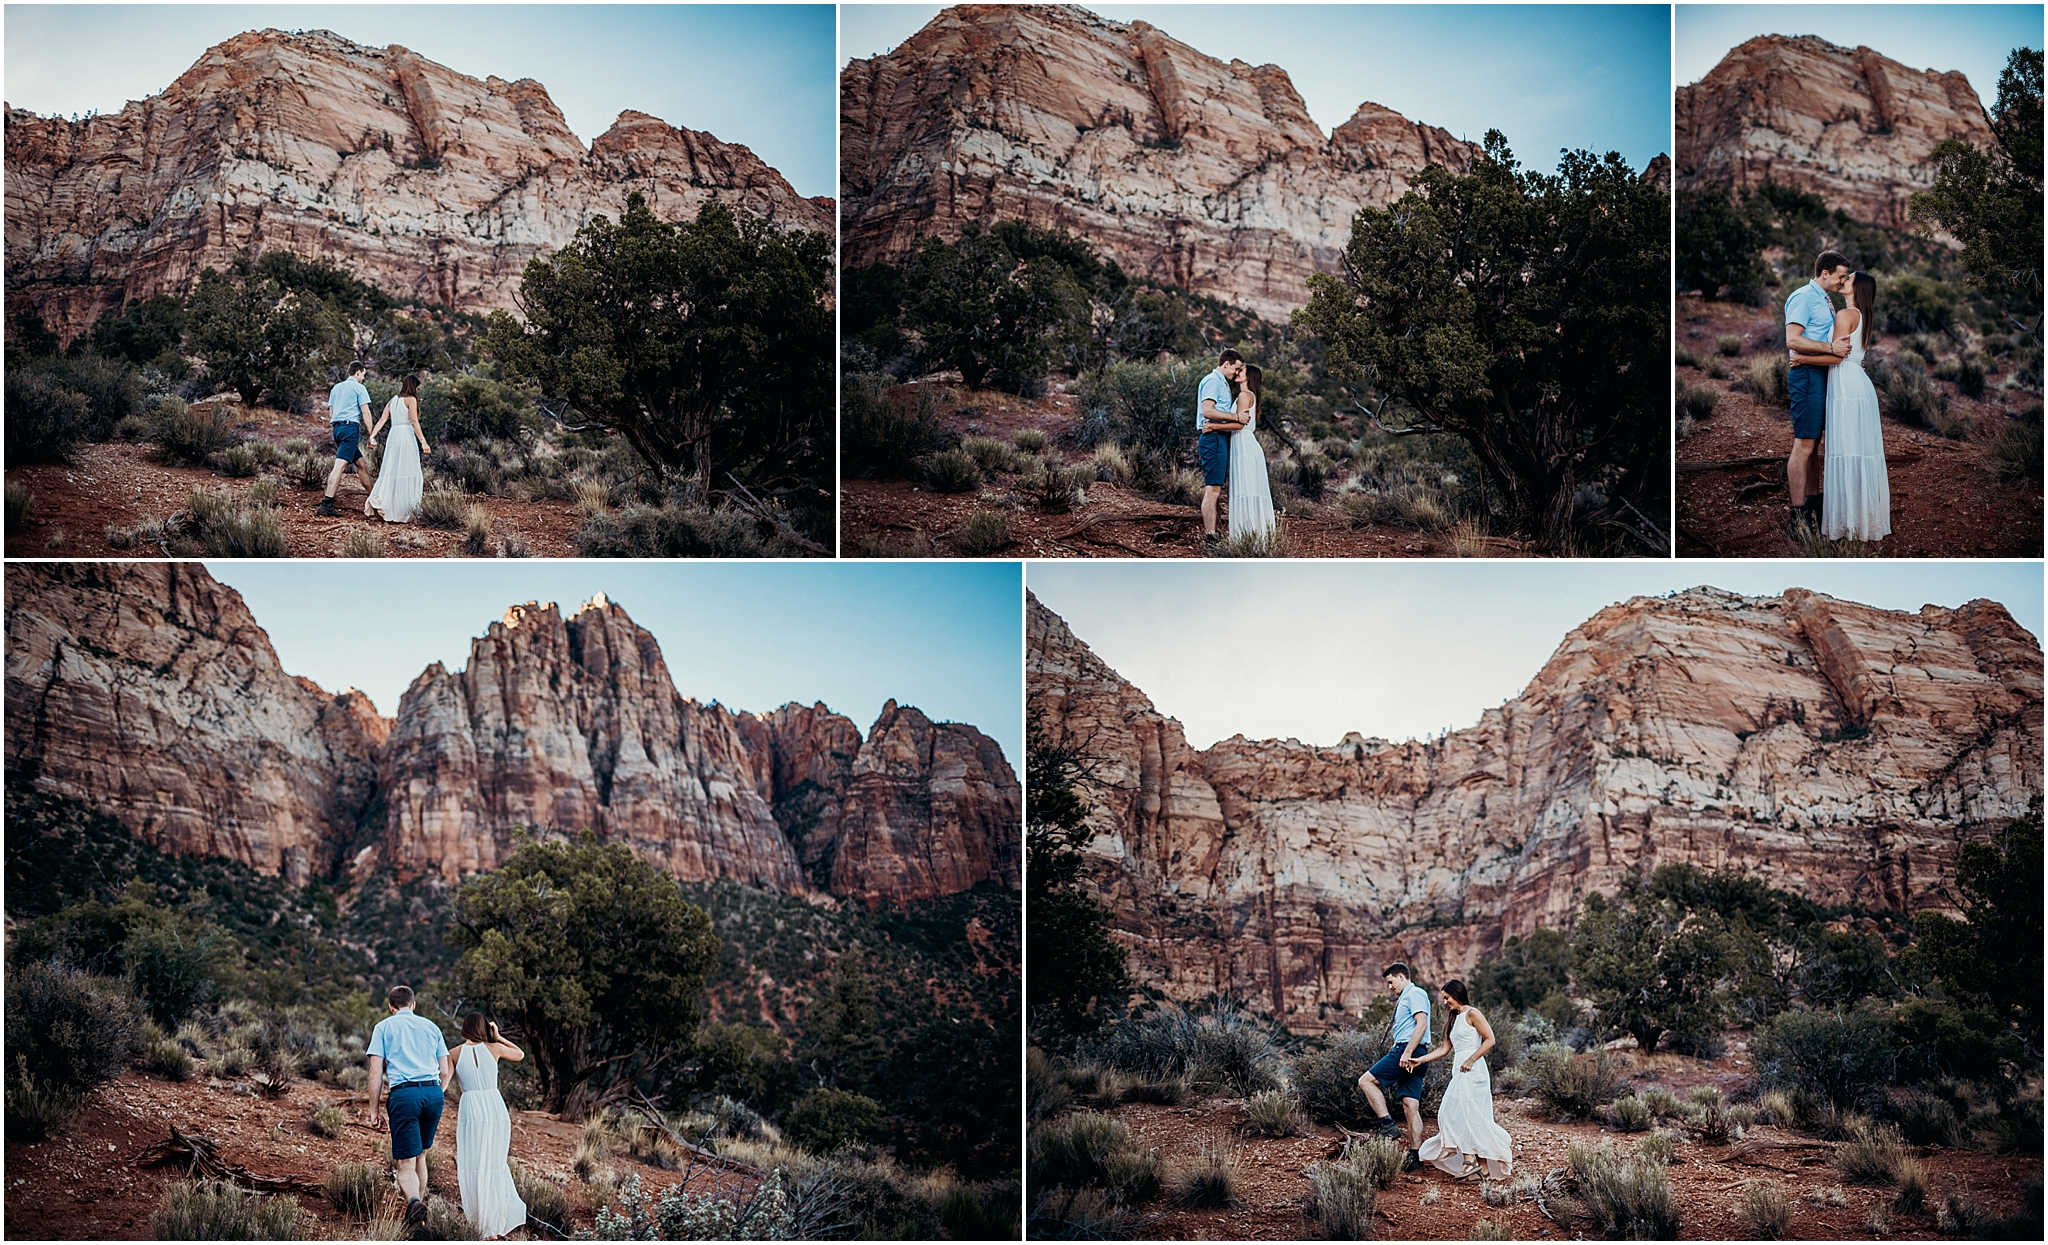 zion national park adventure engagement session zion portraits utah photographer arizona photographer 16.jpg